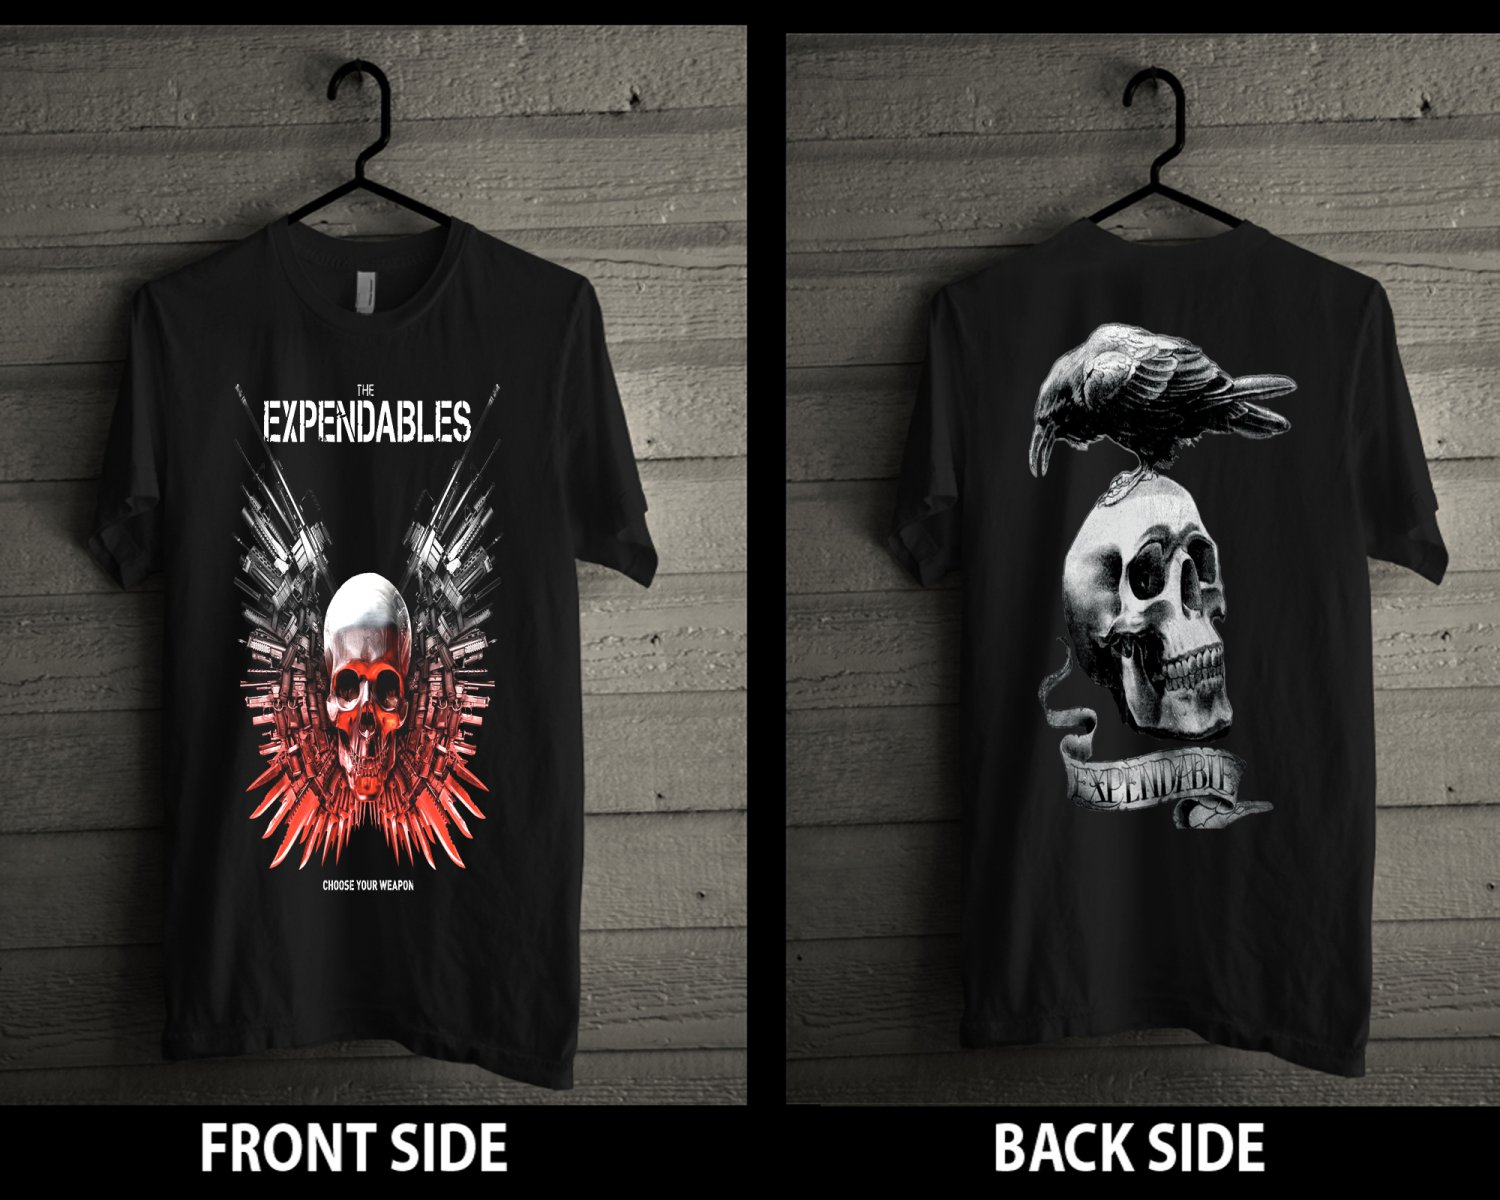 THE EXPENDABLES Black T-Shirt av Size S-M-L-XL New Cotton Tshirt